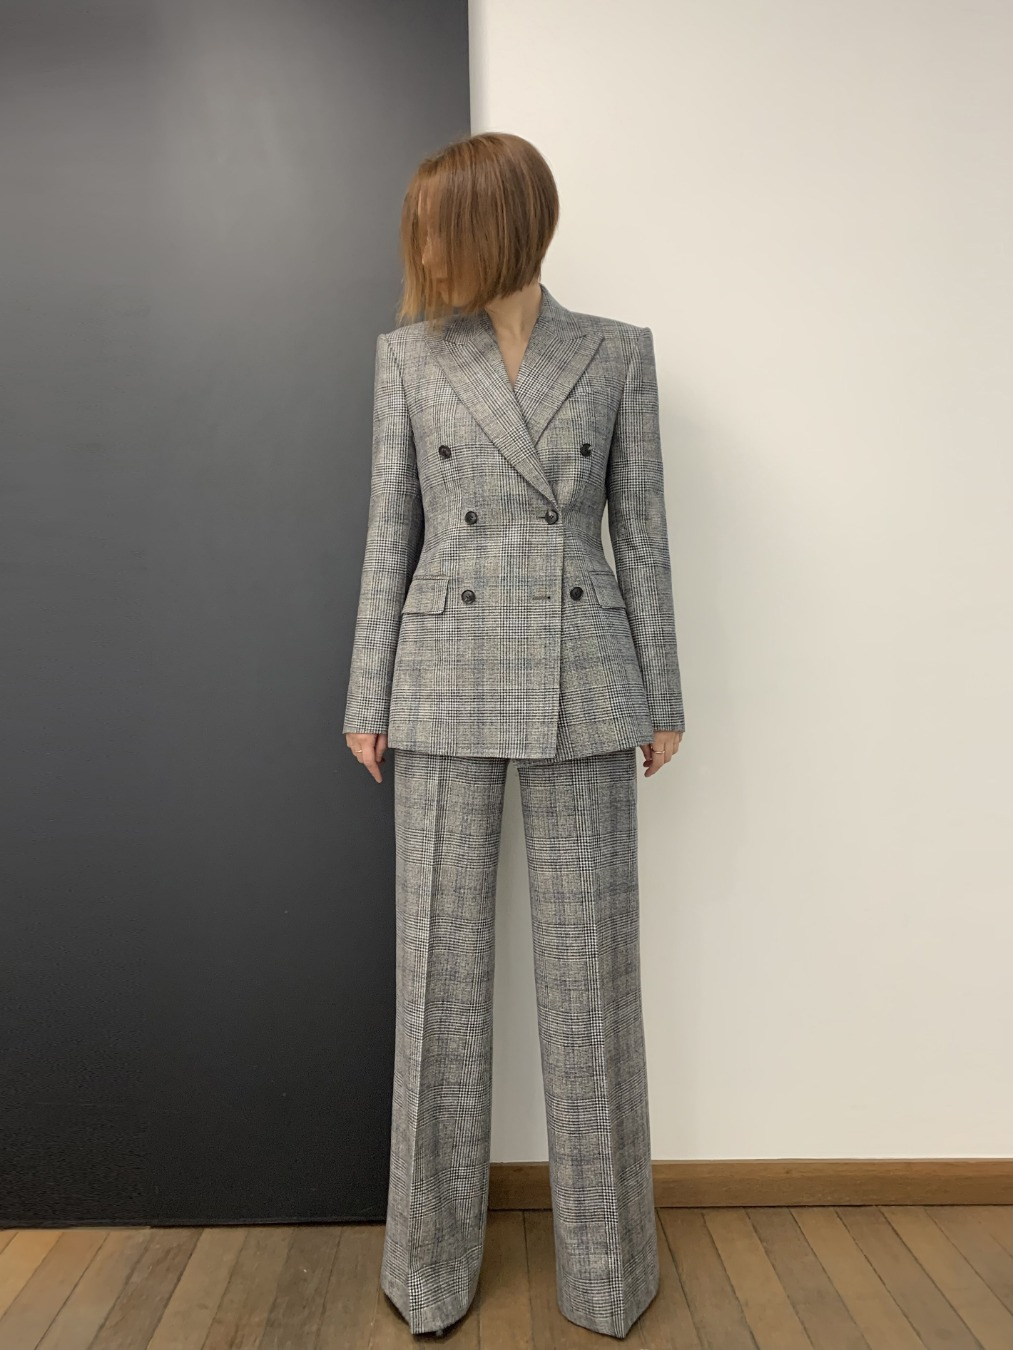 GRAY-BLUE GLEN CHECK PANTS